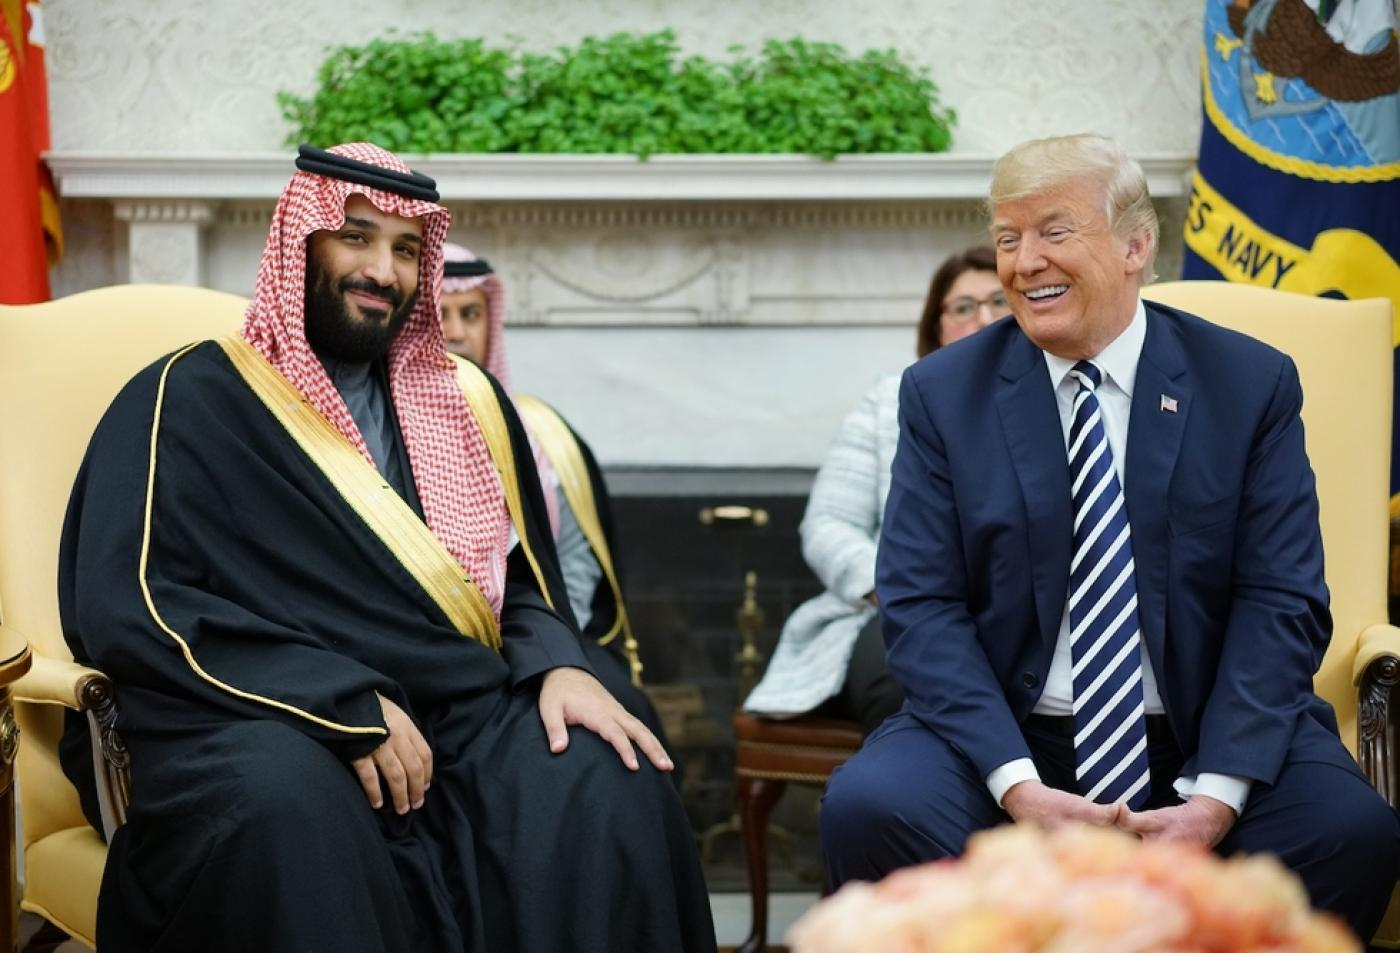 Trump and Saudi Crown Prince Mohammed bin Salman at the White house in 2018.